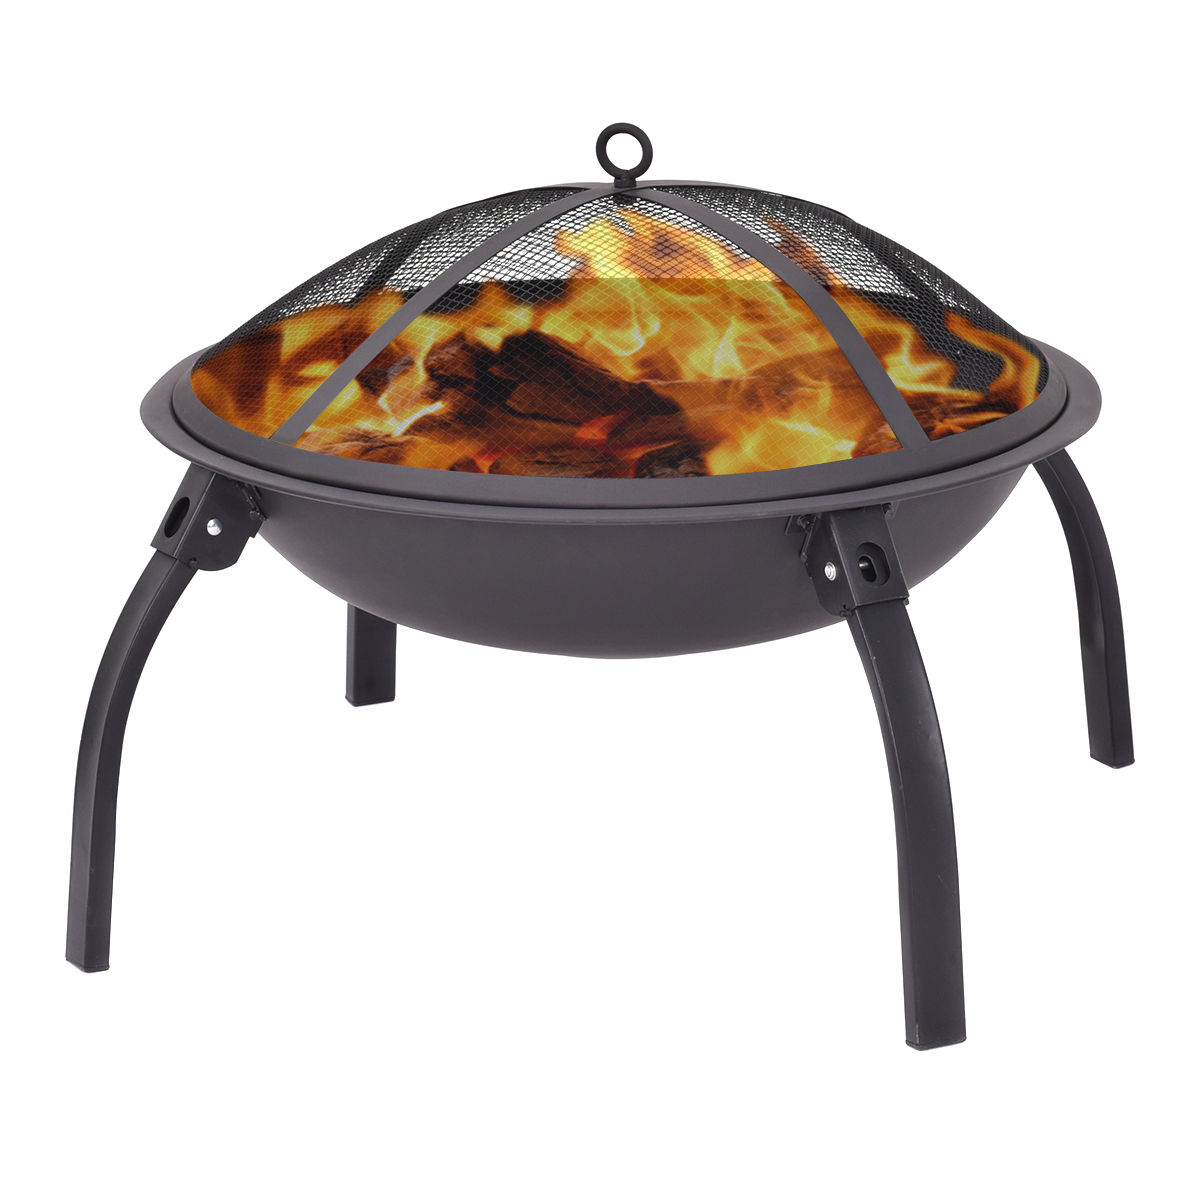 Costway 22'' Outdoor Metal Firepit Backyard Patio Garden Round Stove Firepit With Poker by Costway